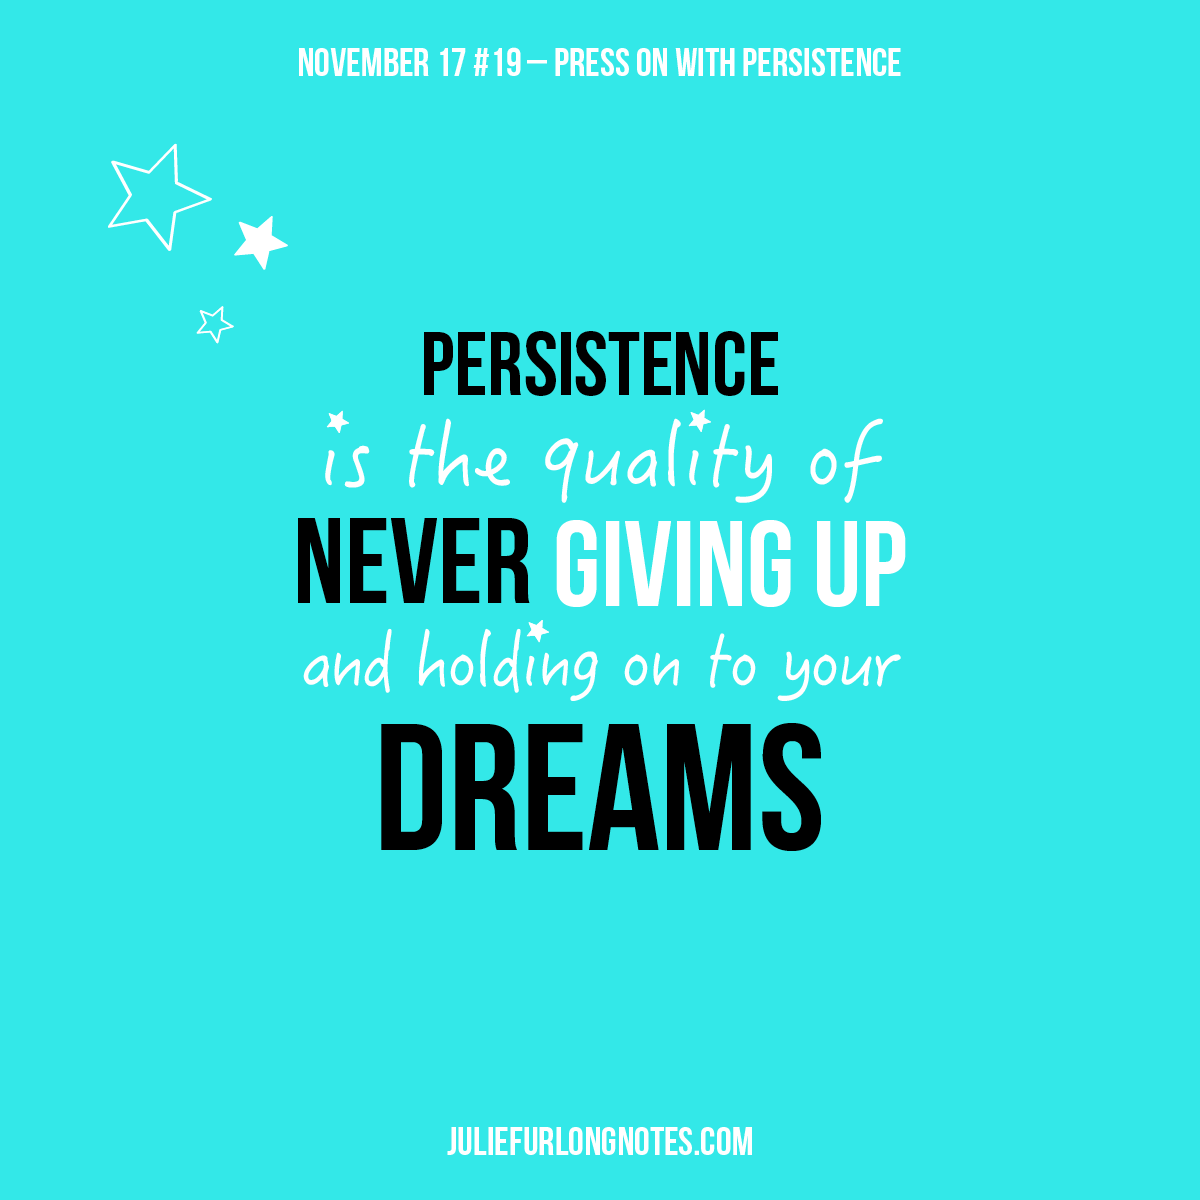 Persistence Motivational Quotes: Press On With Persistence